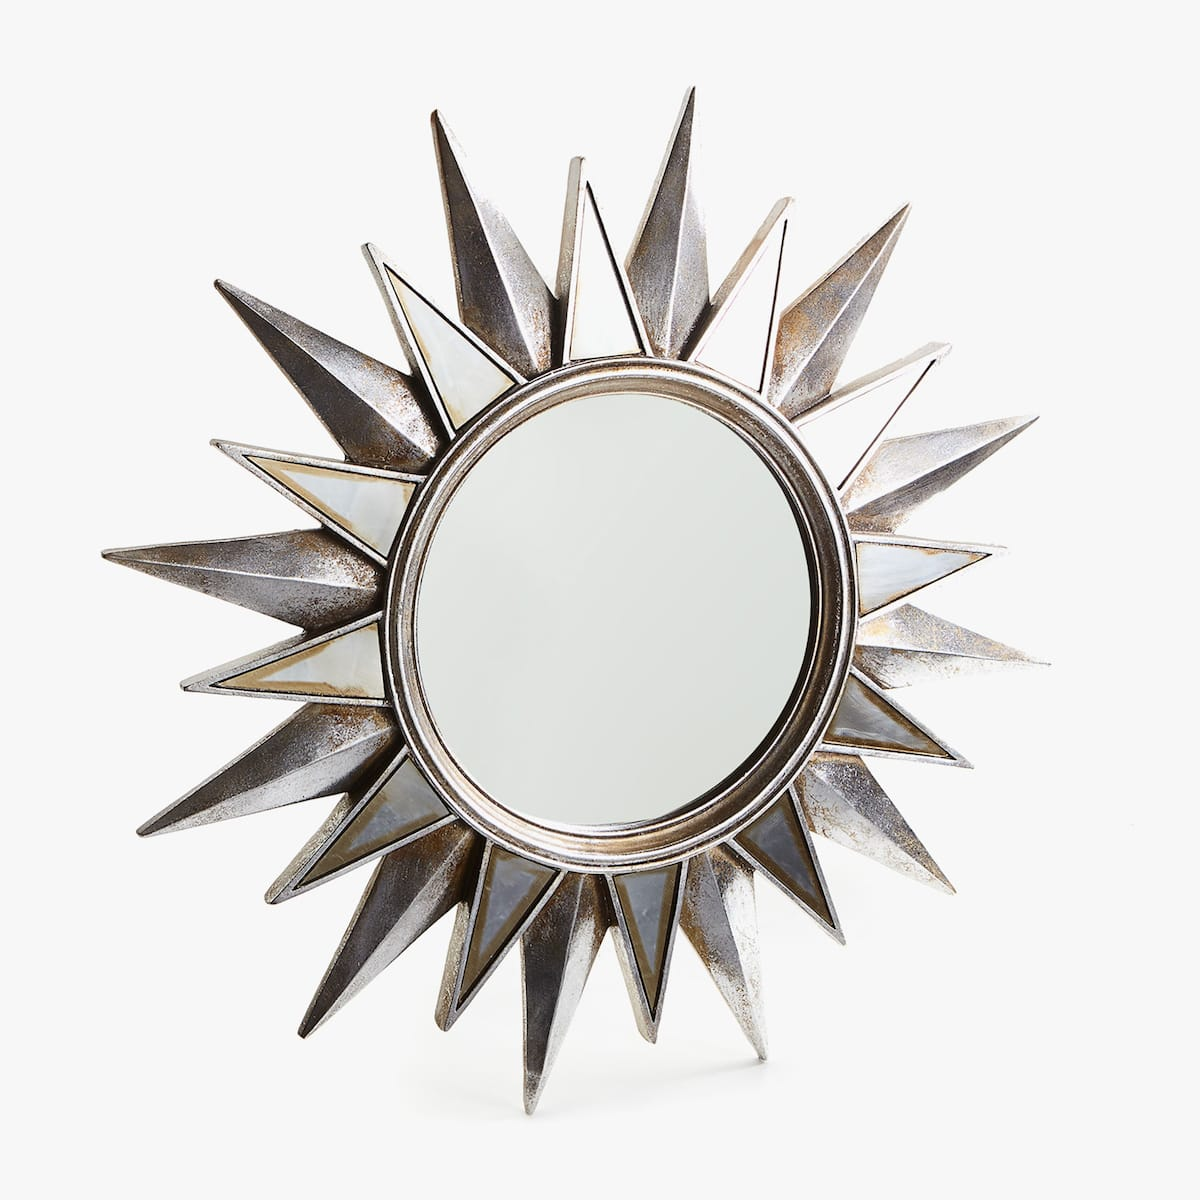 Image 1 Of The Silver Sun Shaped Mirror